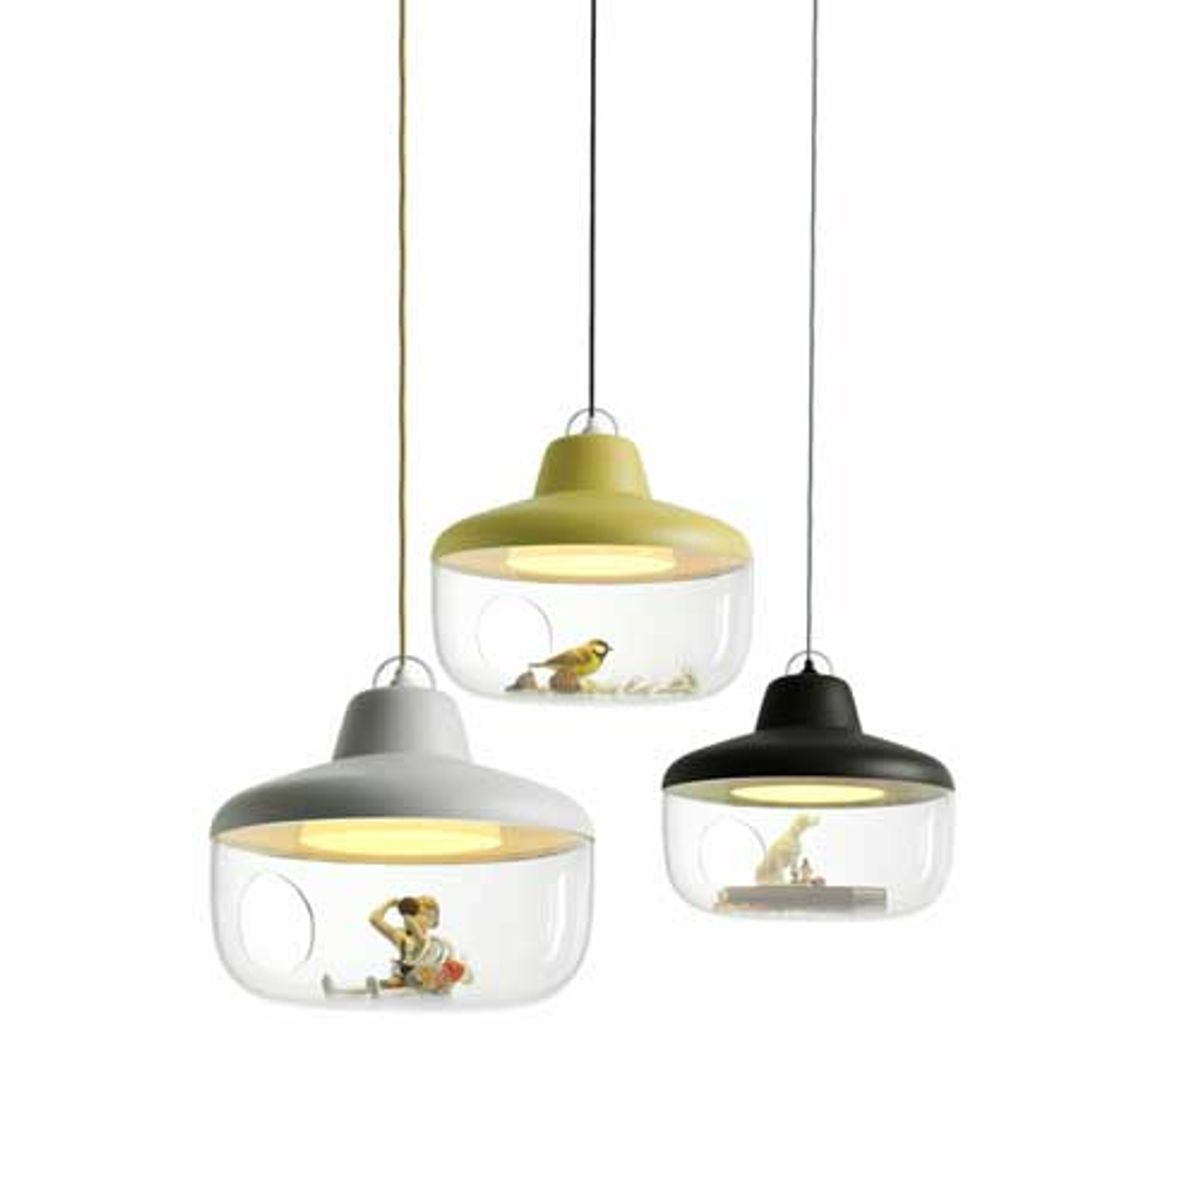 Suspension globe polyester Favorite Things Eno Studio - charbon